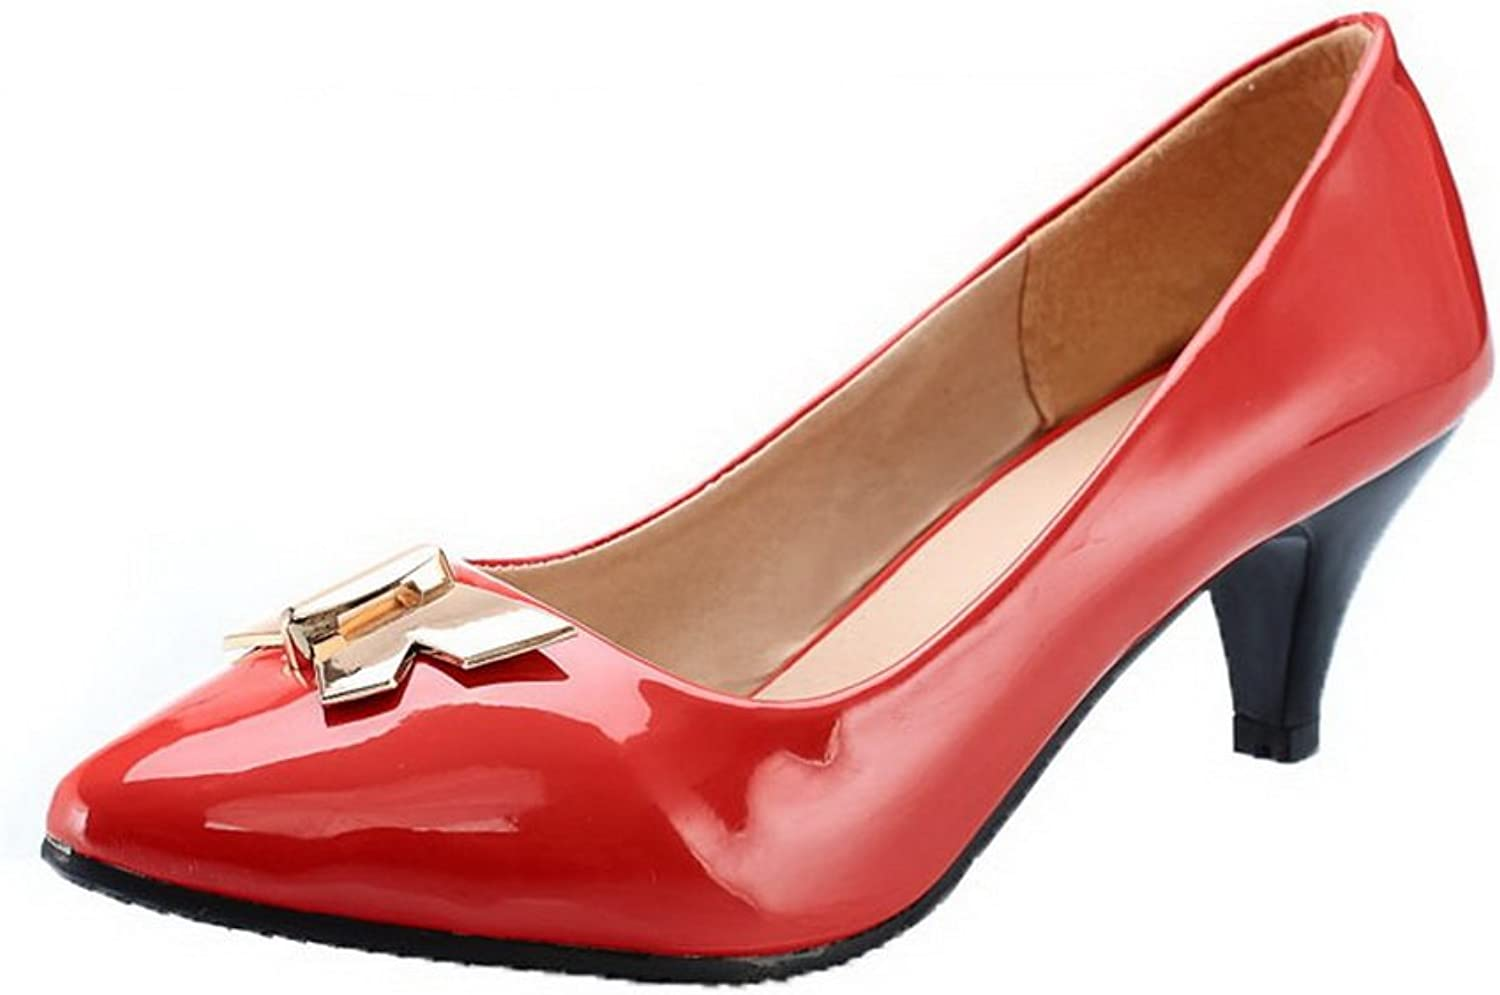 AllhqFashion Women's Closed-Toe Kitten-Heels Patent Leather Pull-On Pumps-shoes